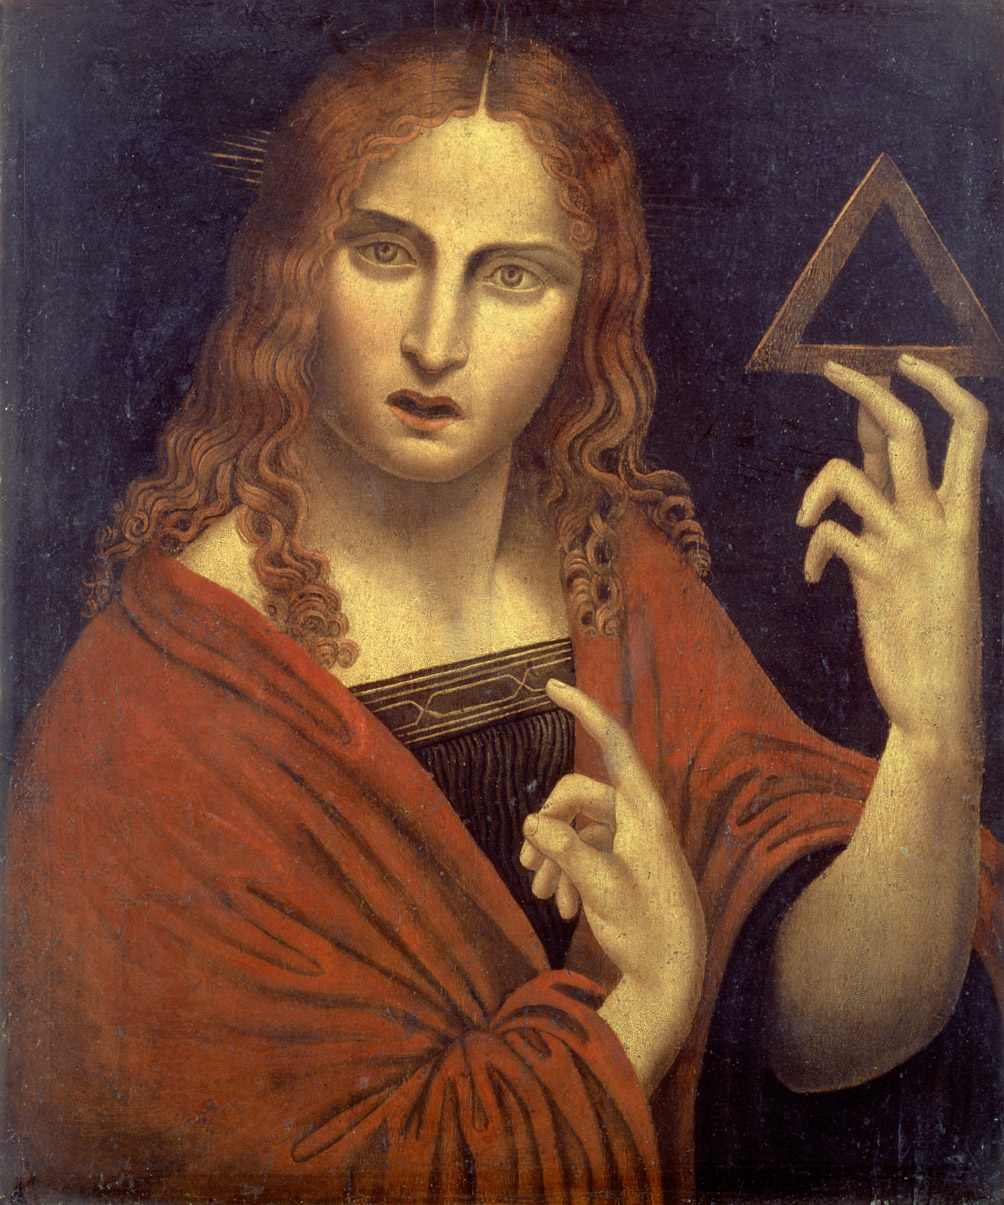 Christ with the Symbol of the Trinity, by Giampietrino, c. 1530. Hermitage Museum, Saint Petersburg.